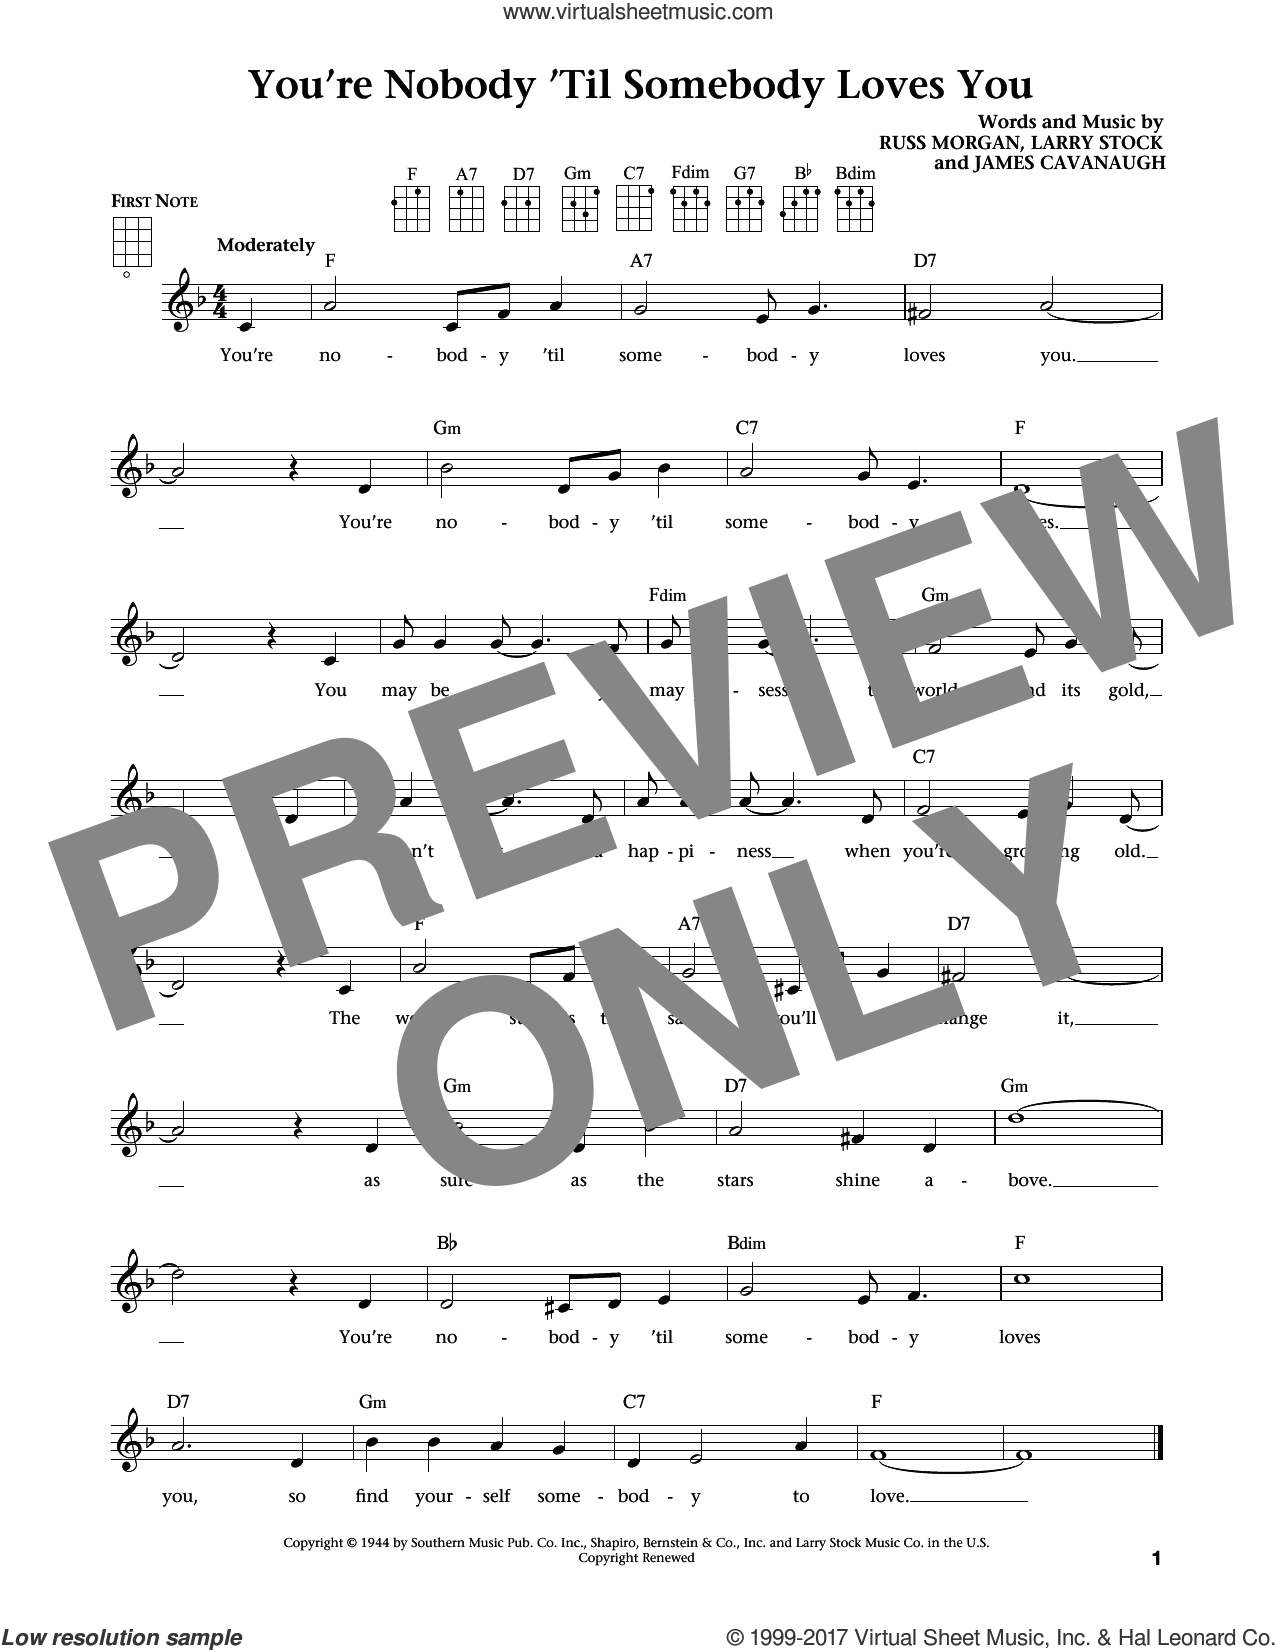 You're Nobody 'til Somebody Loves You (from The Daily Ukulele) (arr. Liz and Jim Beloff) sheet music for ukulele by James Cavanaugh, Dean Martin, Frank Sinatra, Jim Beloff, Liz Beloff, Larry Stock and Russ Morgan, intermediate skill level